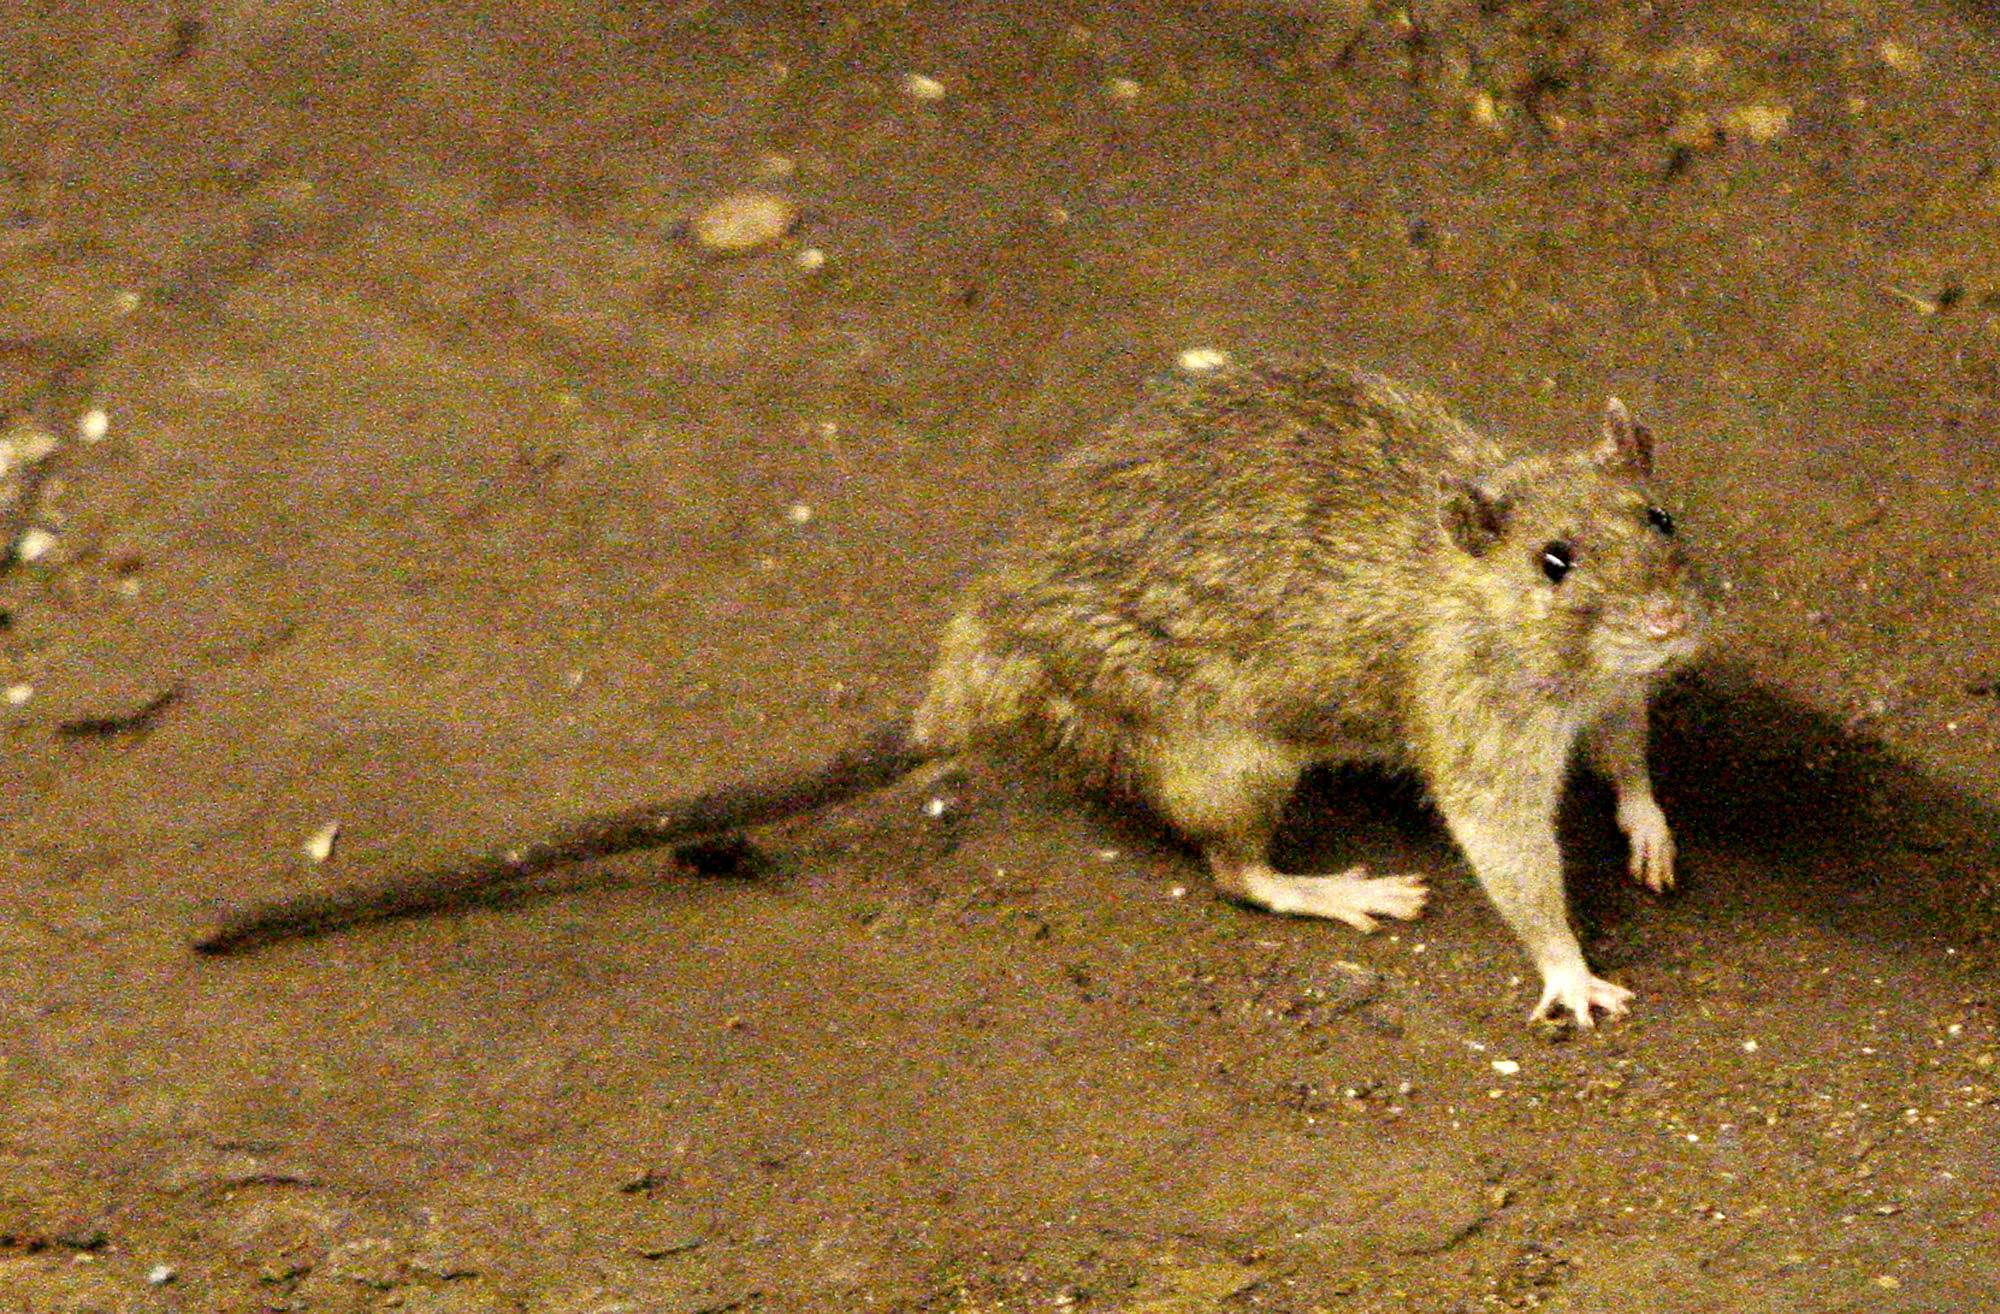 A rat moves along the ground near the subway tracks at Union Square in New York. In July 2014, New York City plans to got to war with its rat population.